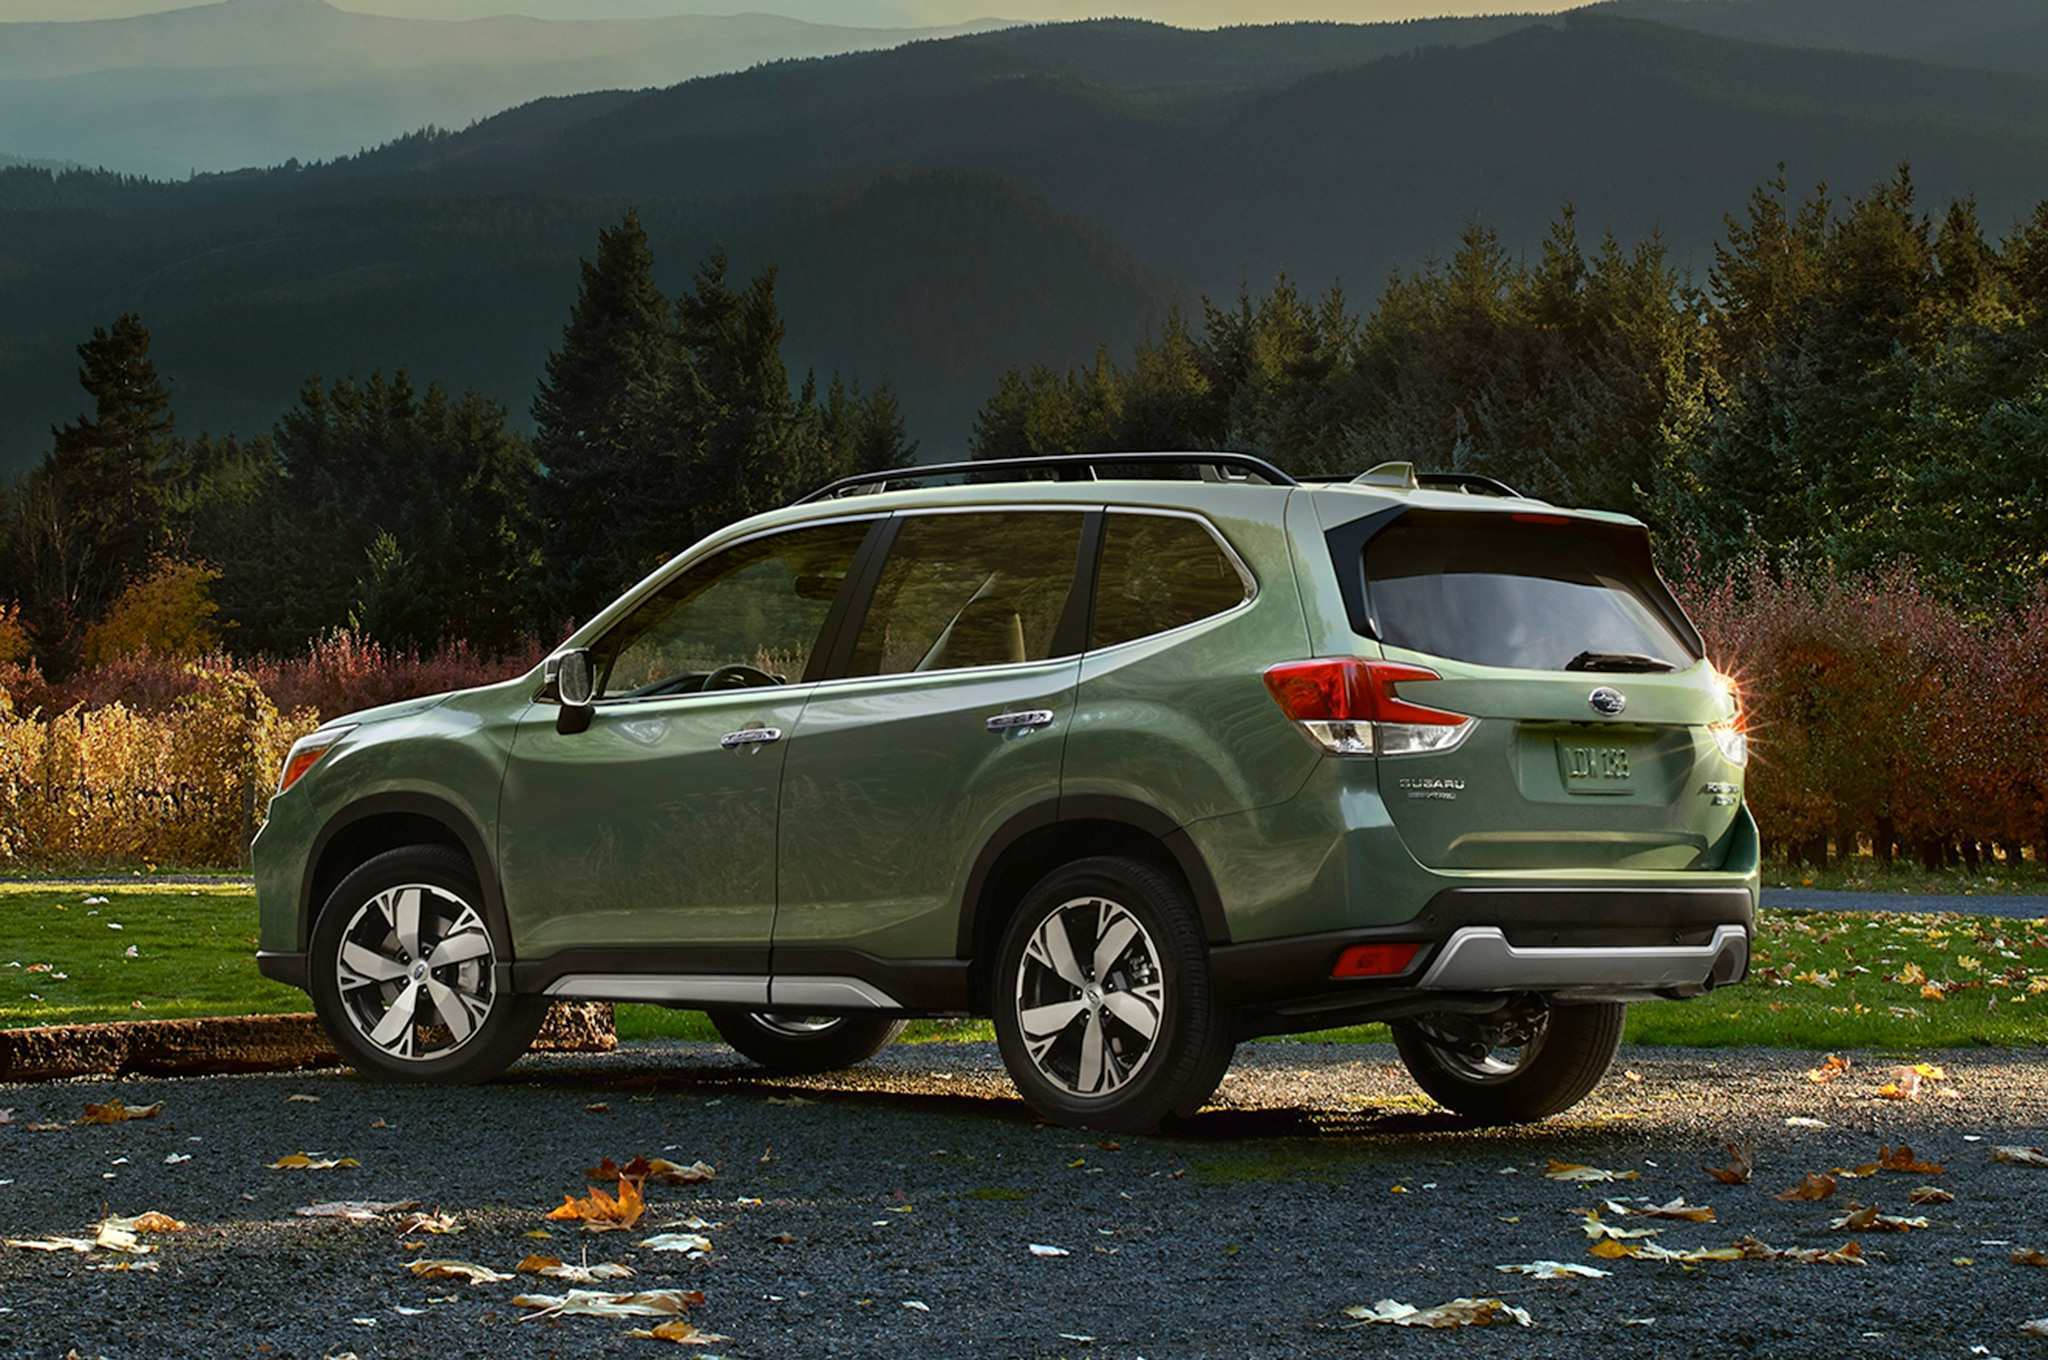 79 The 2019 Subaru Forester Sport 2 Pictures for 2019 Subaru Forester Sport 2